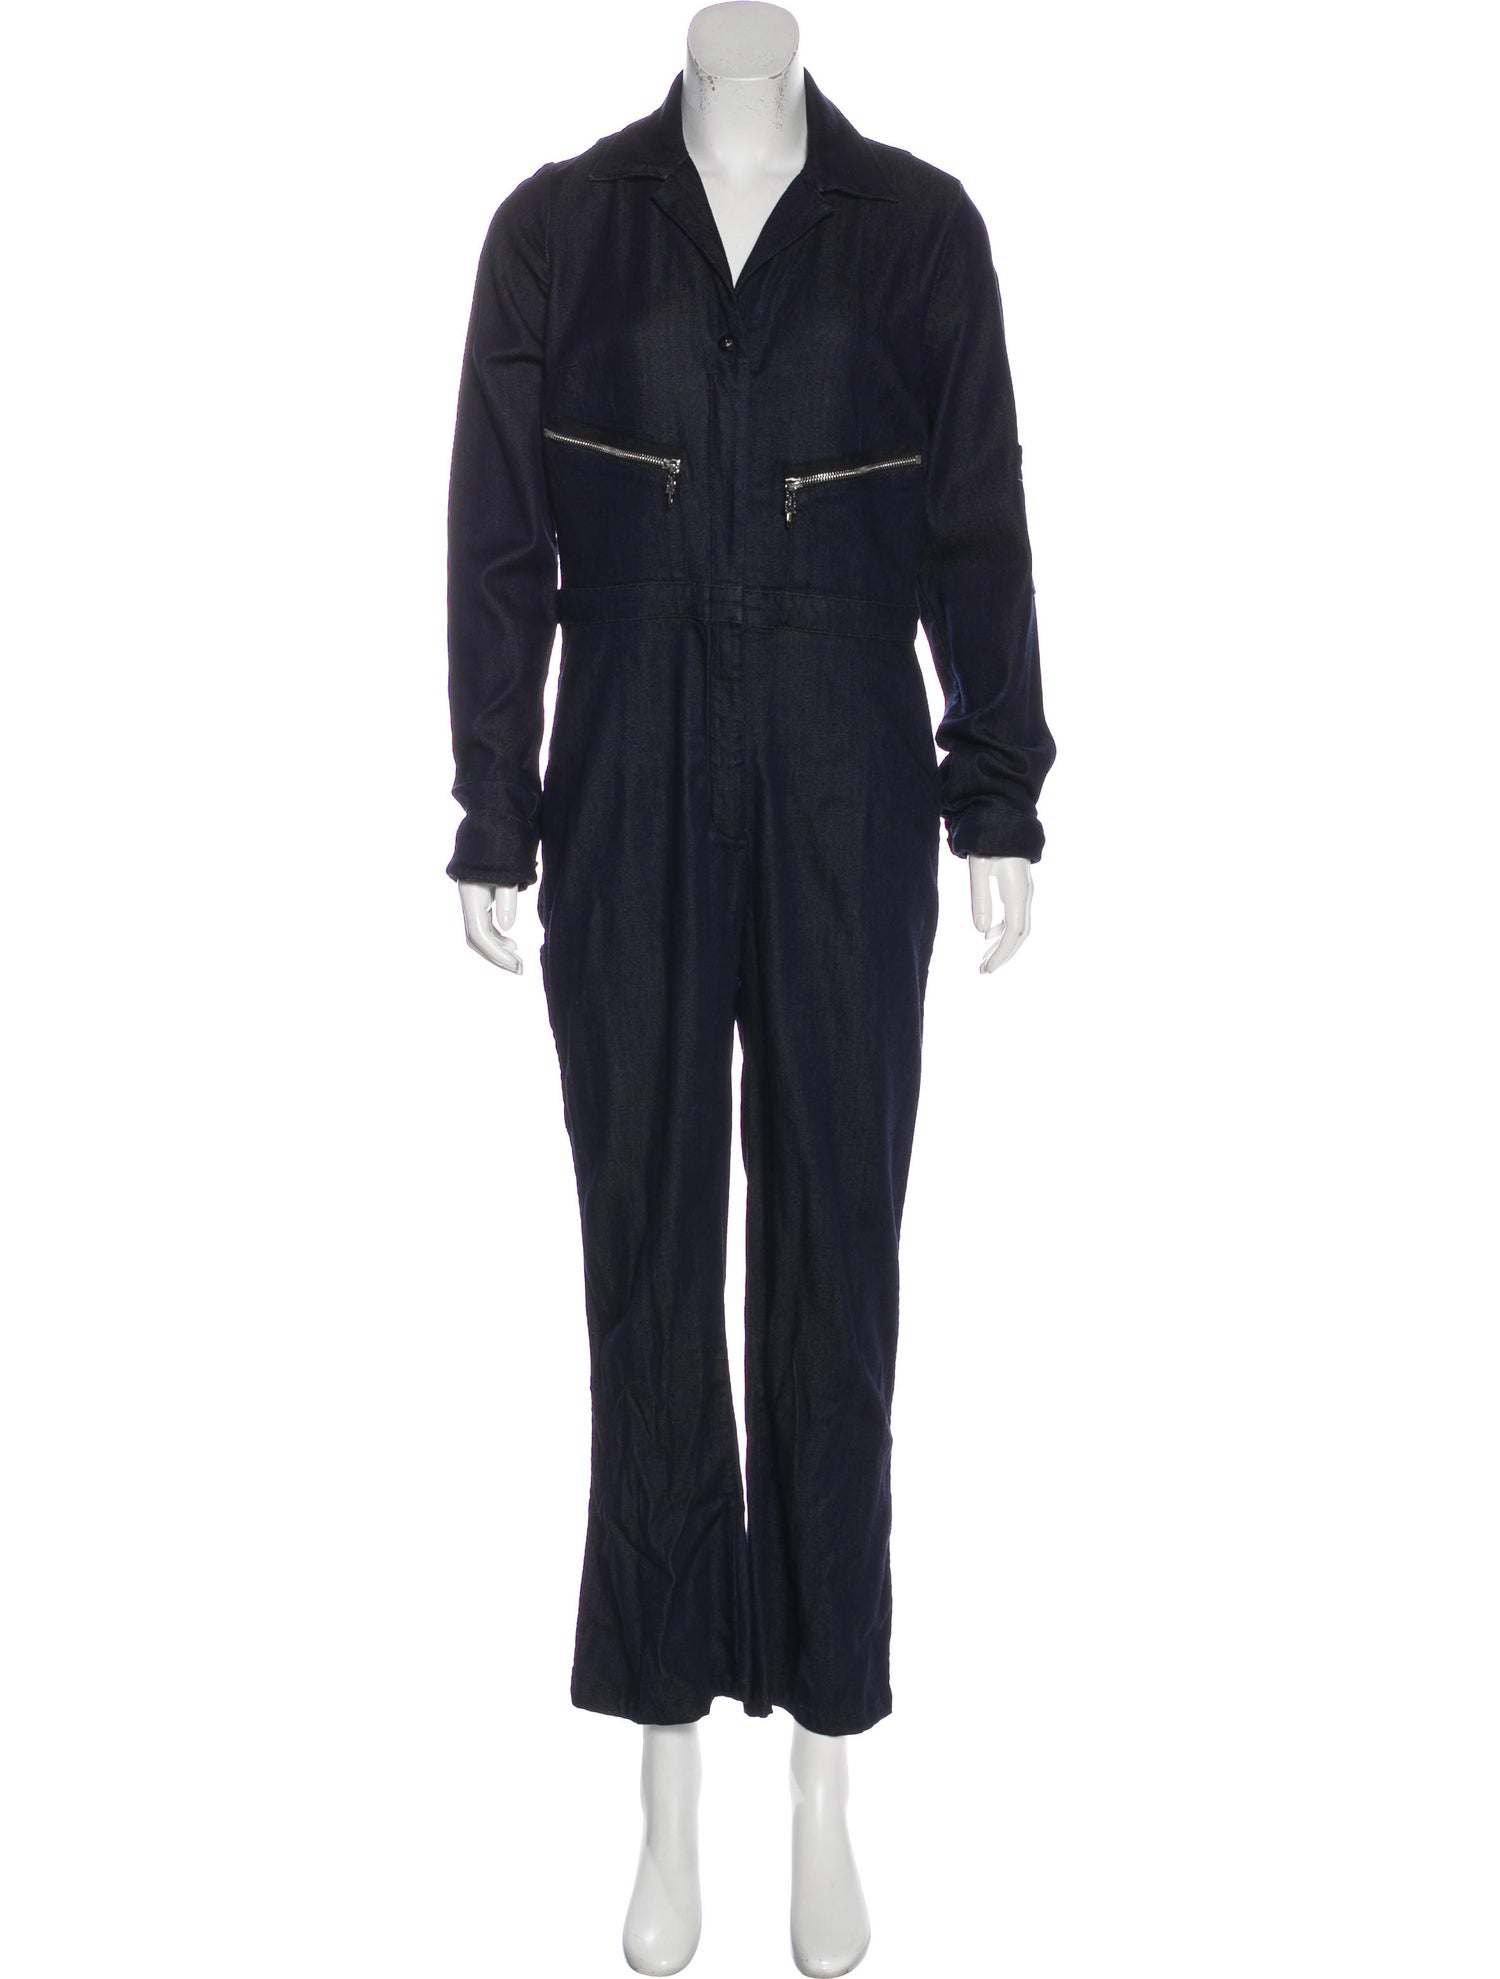 Denim Wide-Leg Jumpsuit by CHROME HEARTS, available on therealreal.com for $275 Kim Kardashian Dress Exact Product